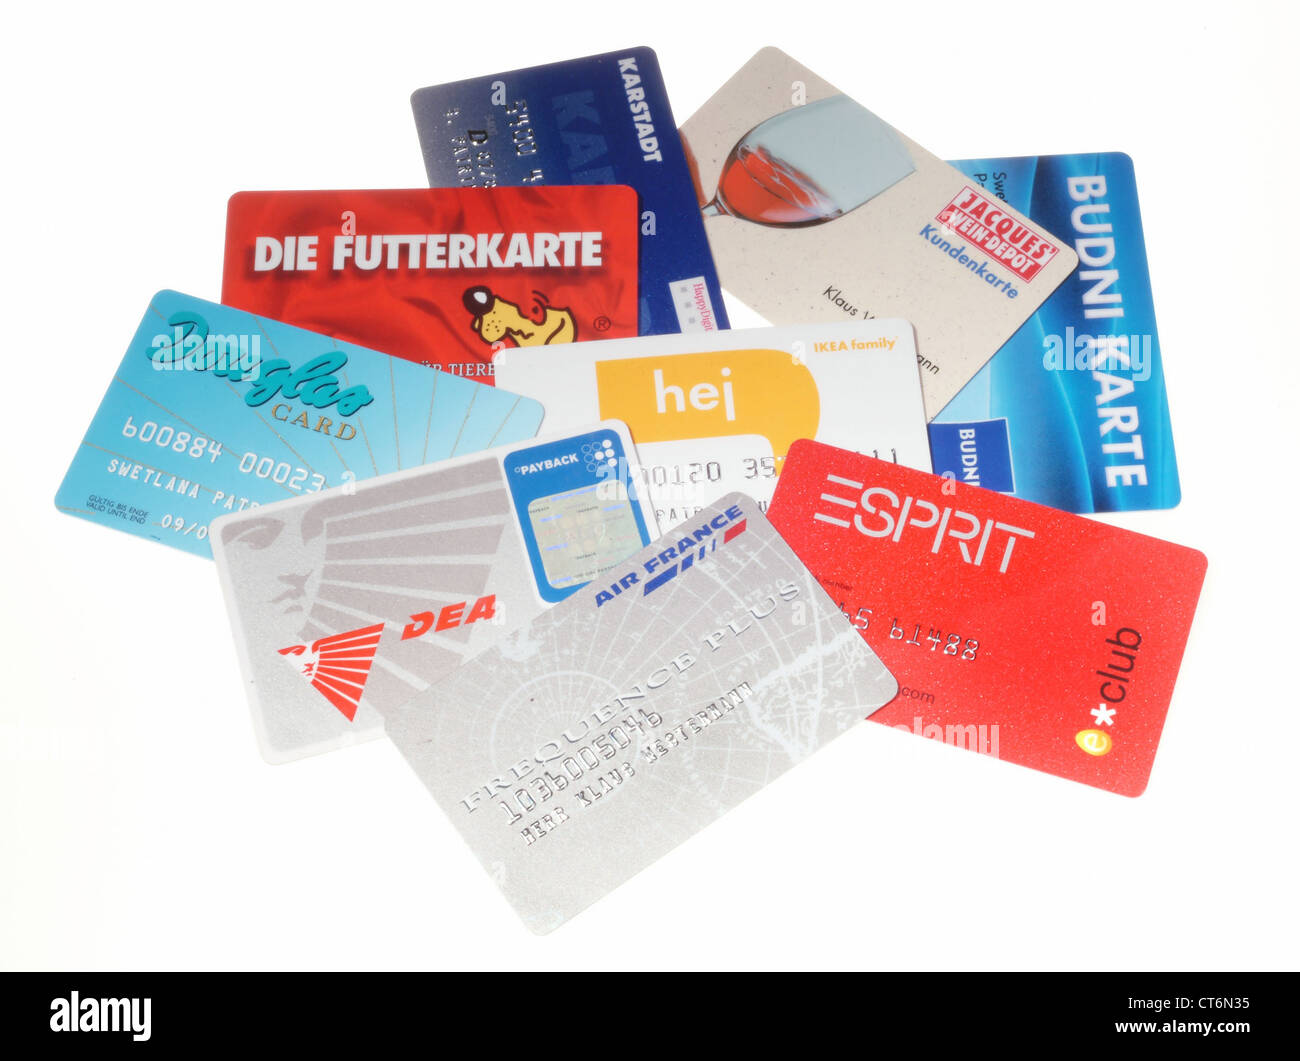 various payback cards